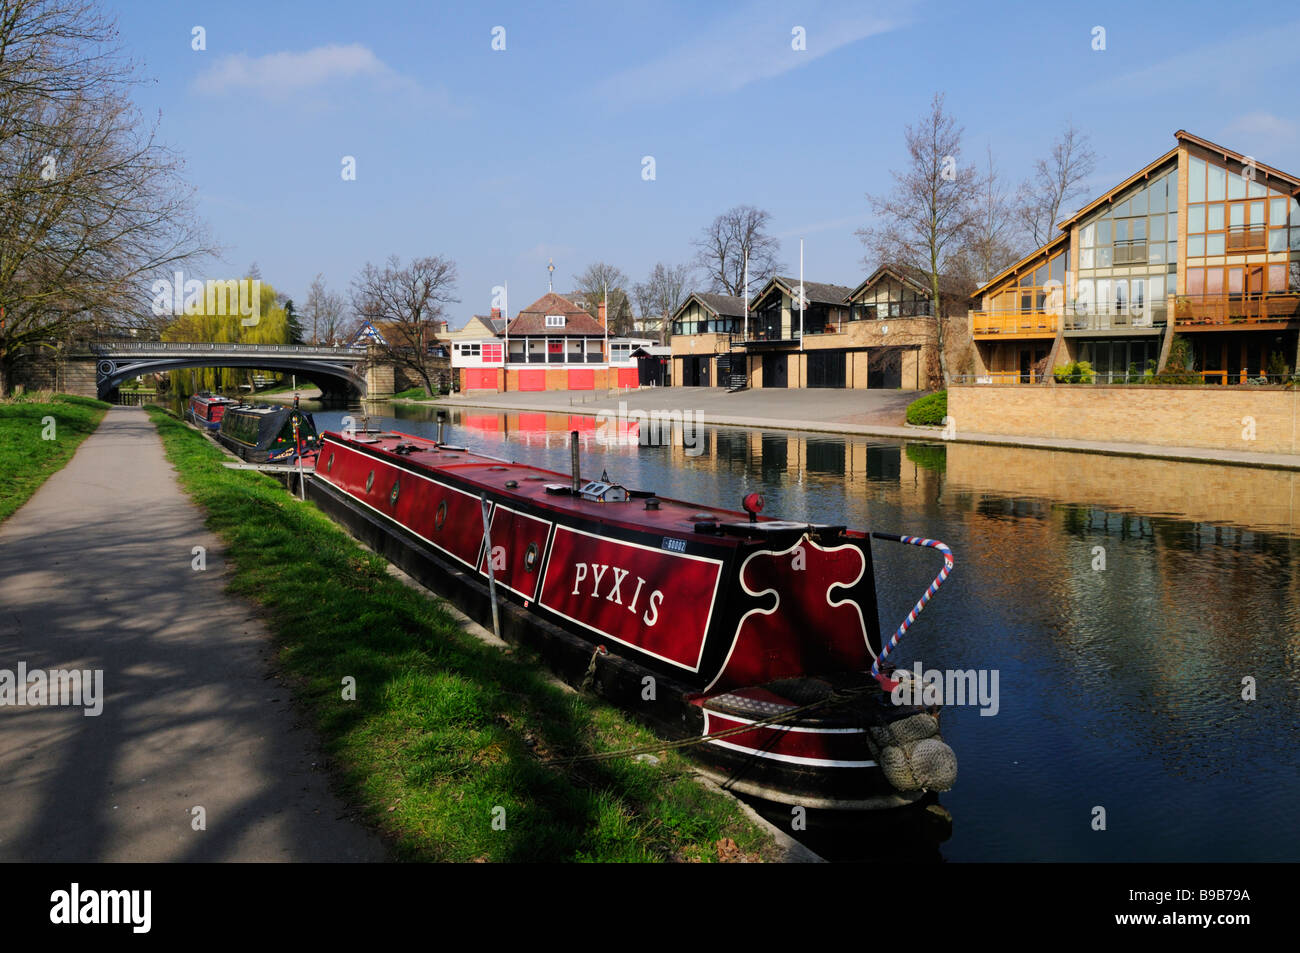 Narrowboats moored on the River Cam at Midsummer Common, with  rowing boathouses on the far bank,  Cambridge England - Stock Image